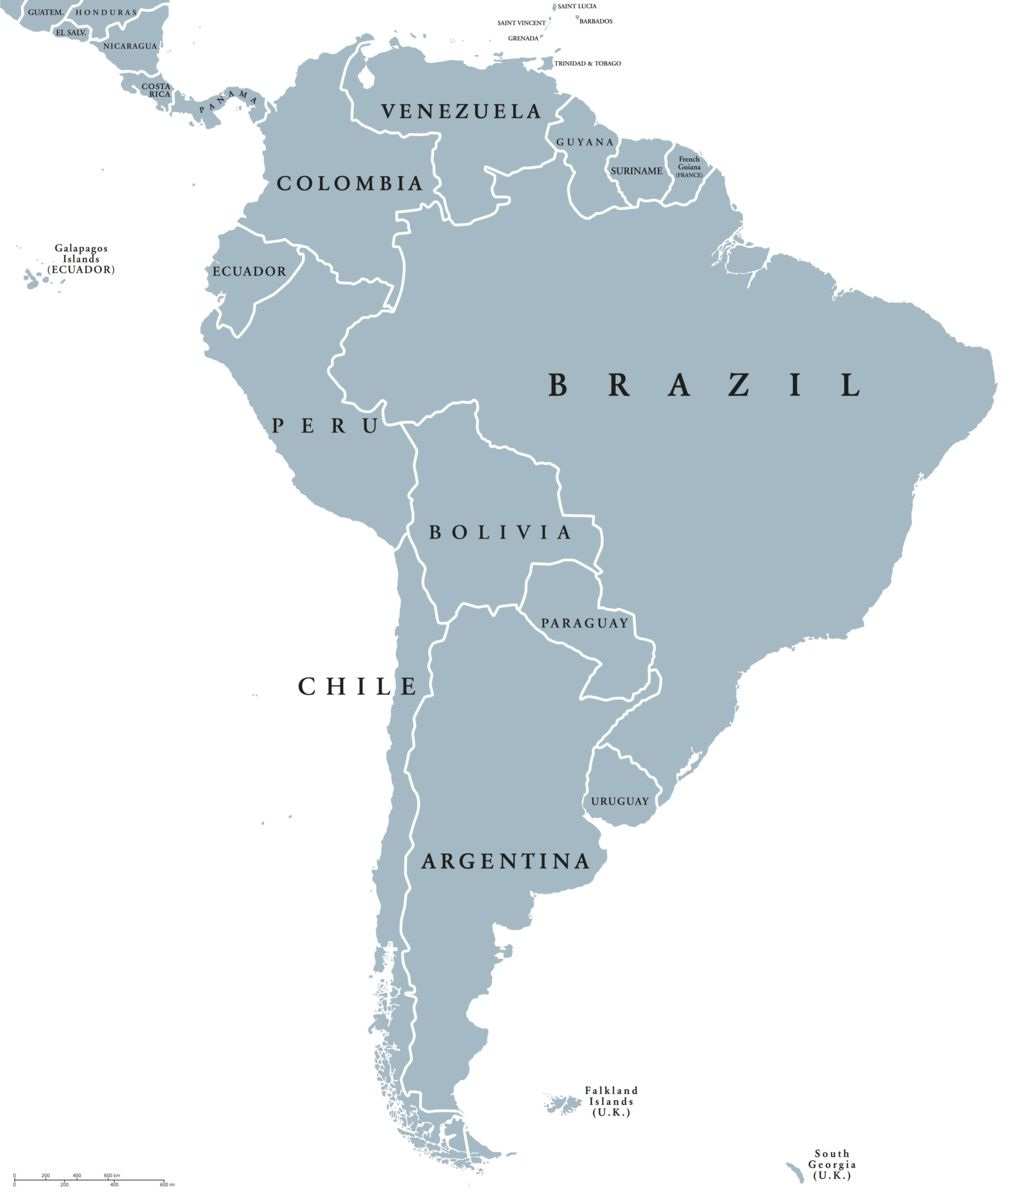 South America Cities Map, South America, South America Cities Map